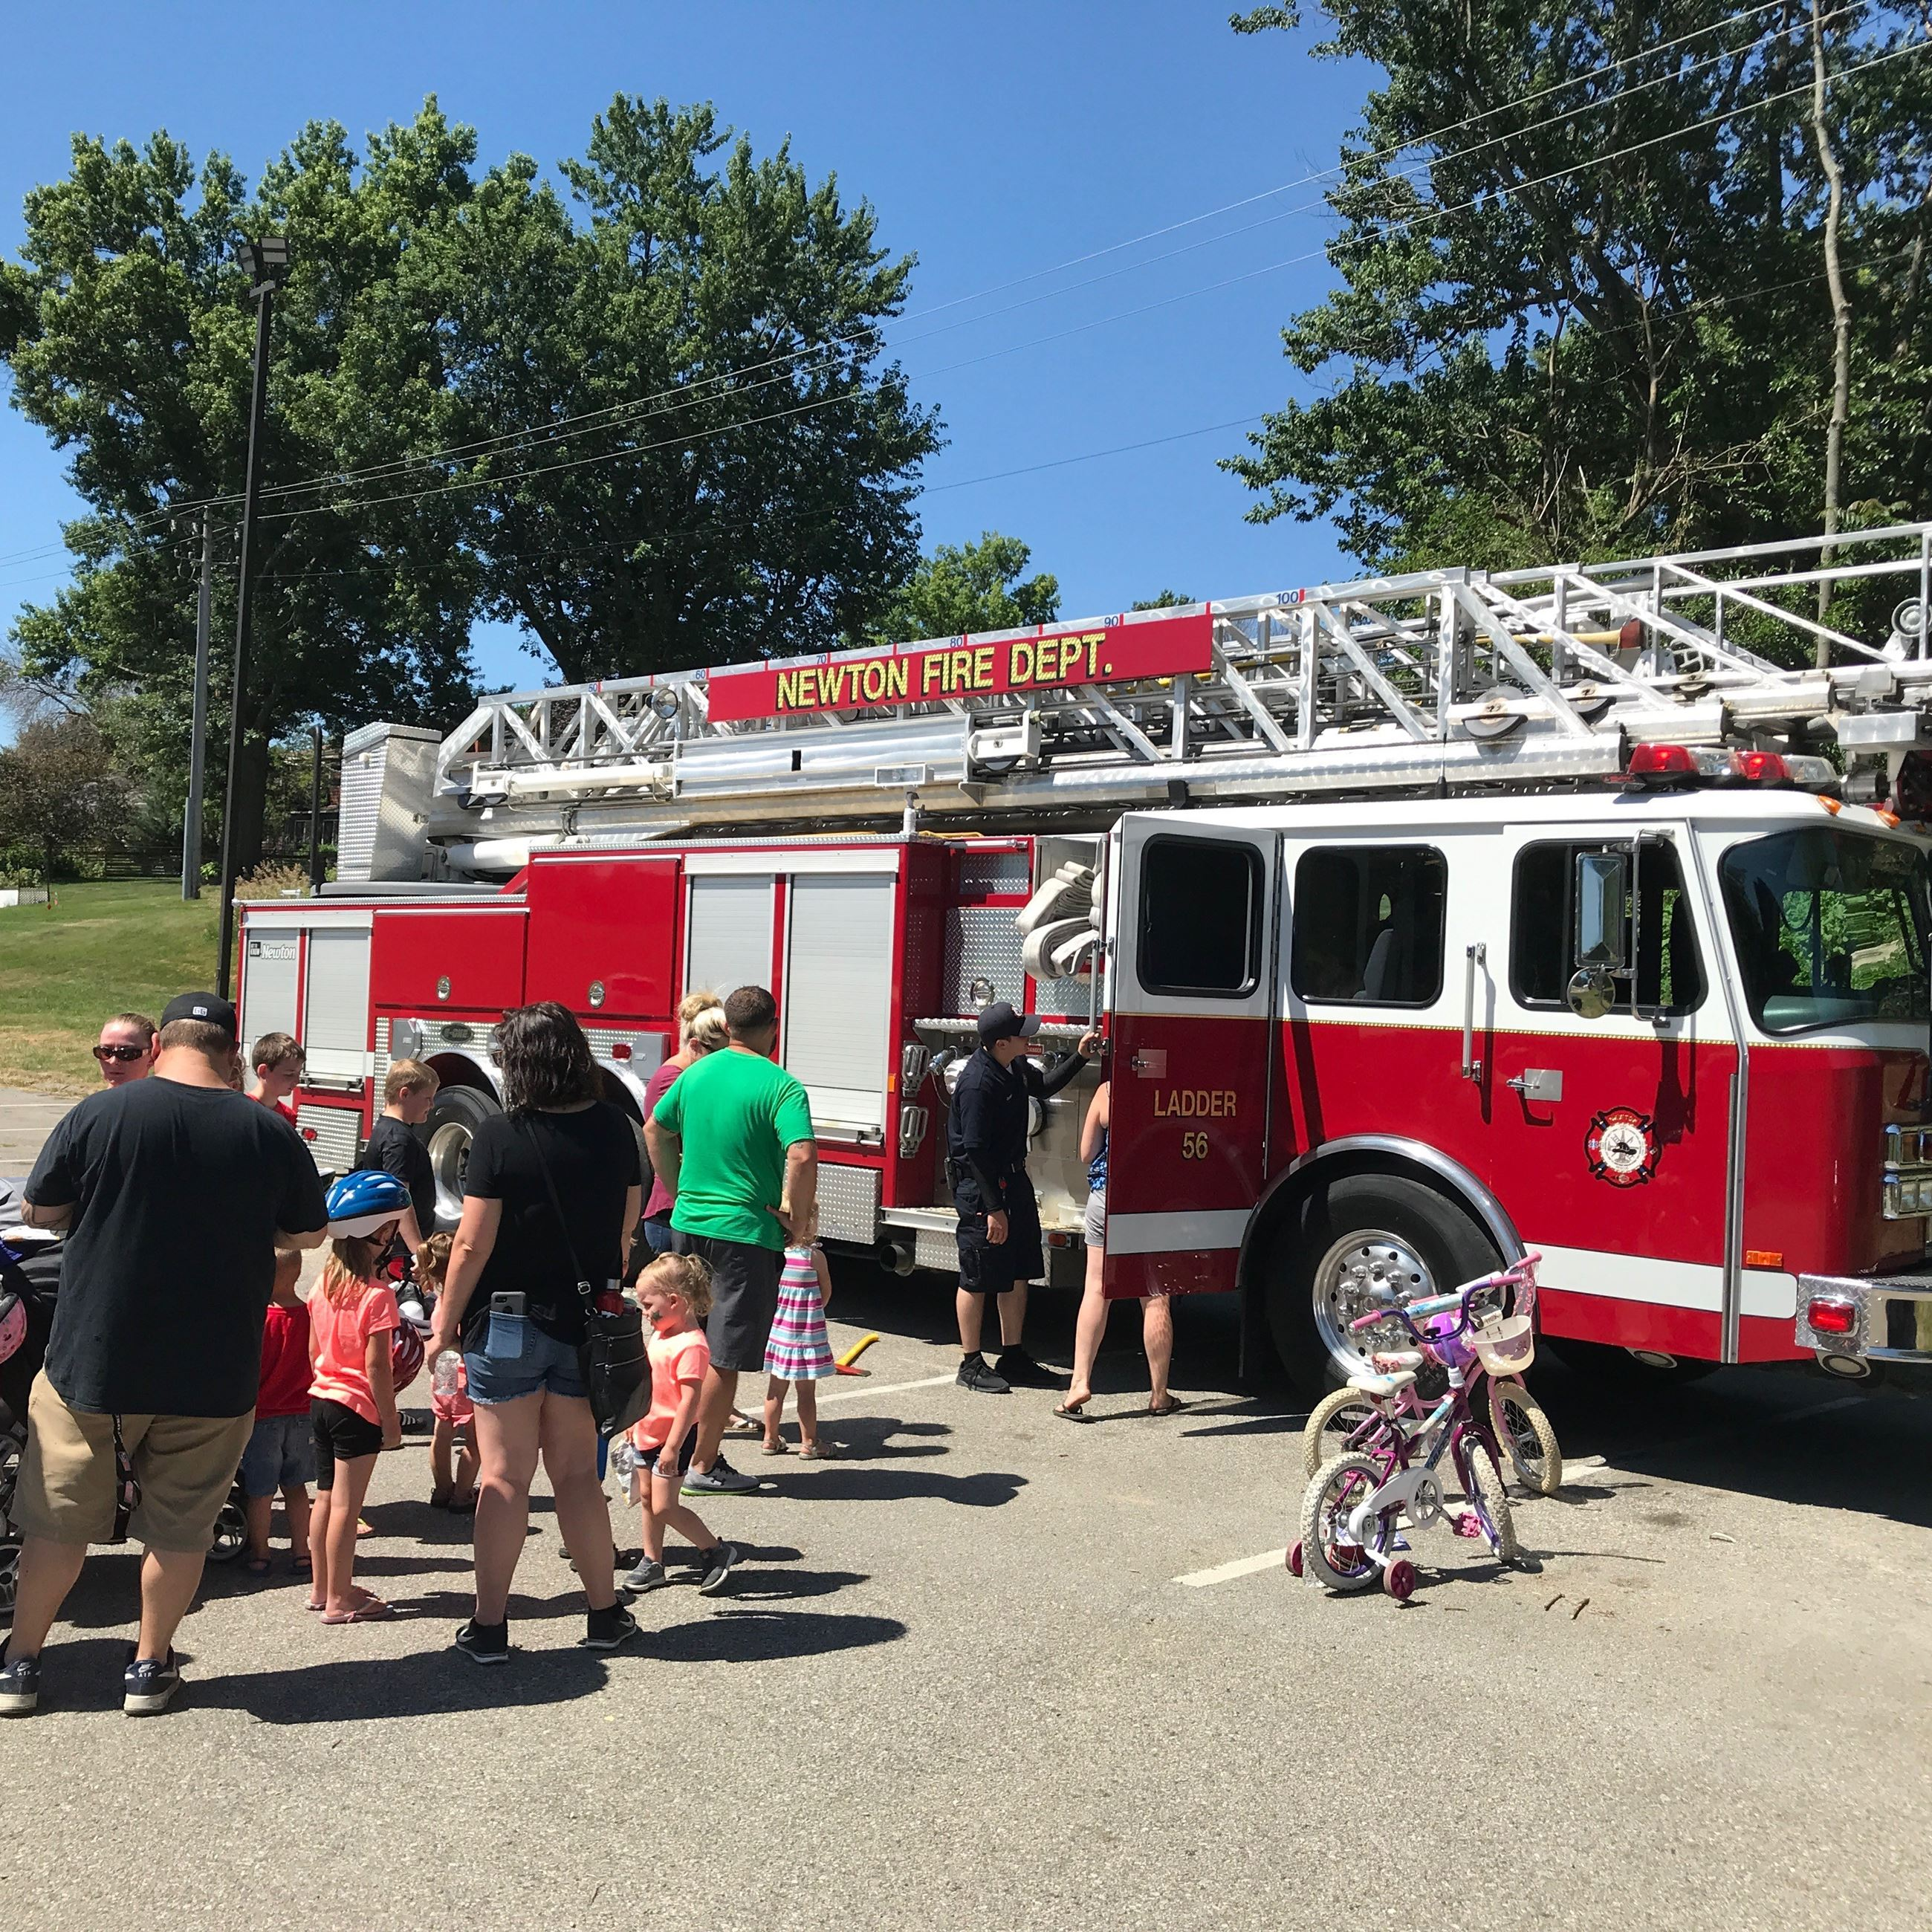 Firefighters Participate in Helmets and Hot Dogs Event